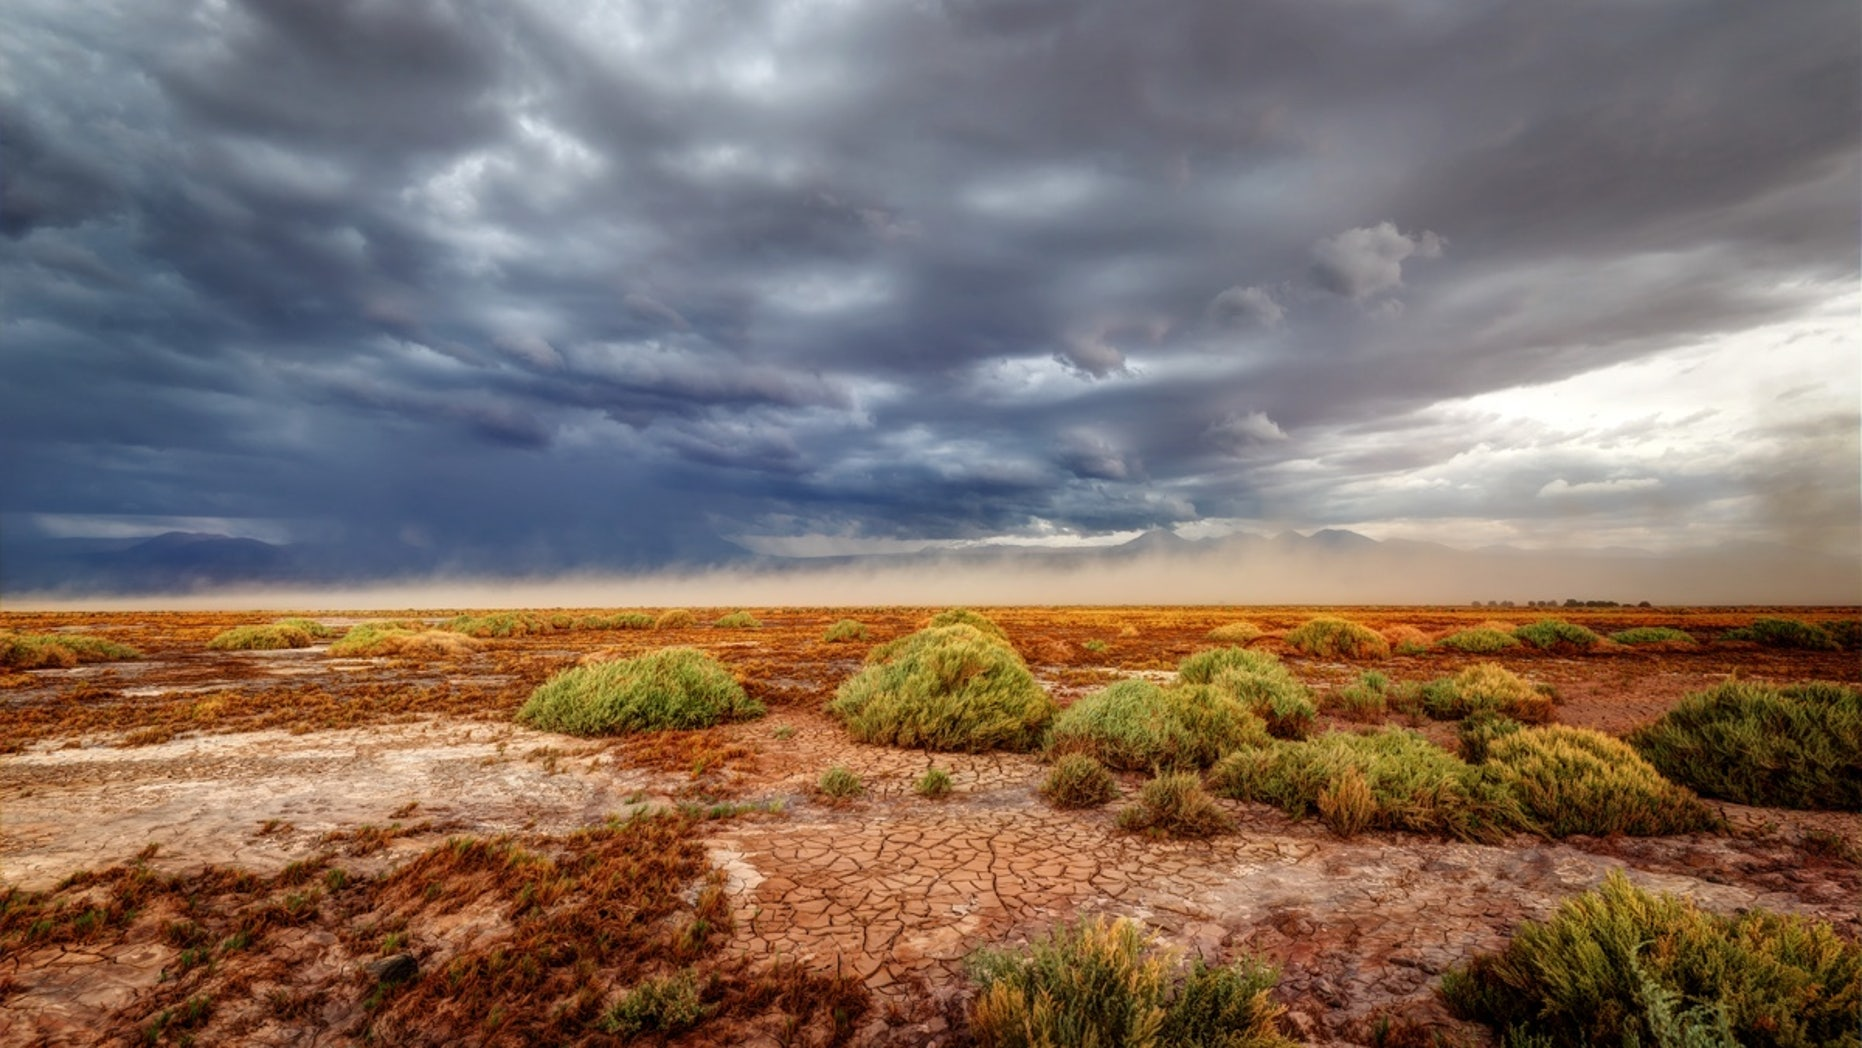 The Atacama desert typically receives less than a half-inch of rain every year.